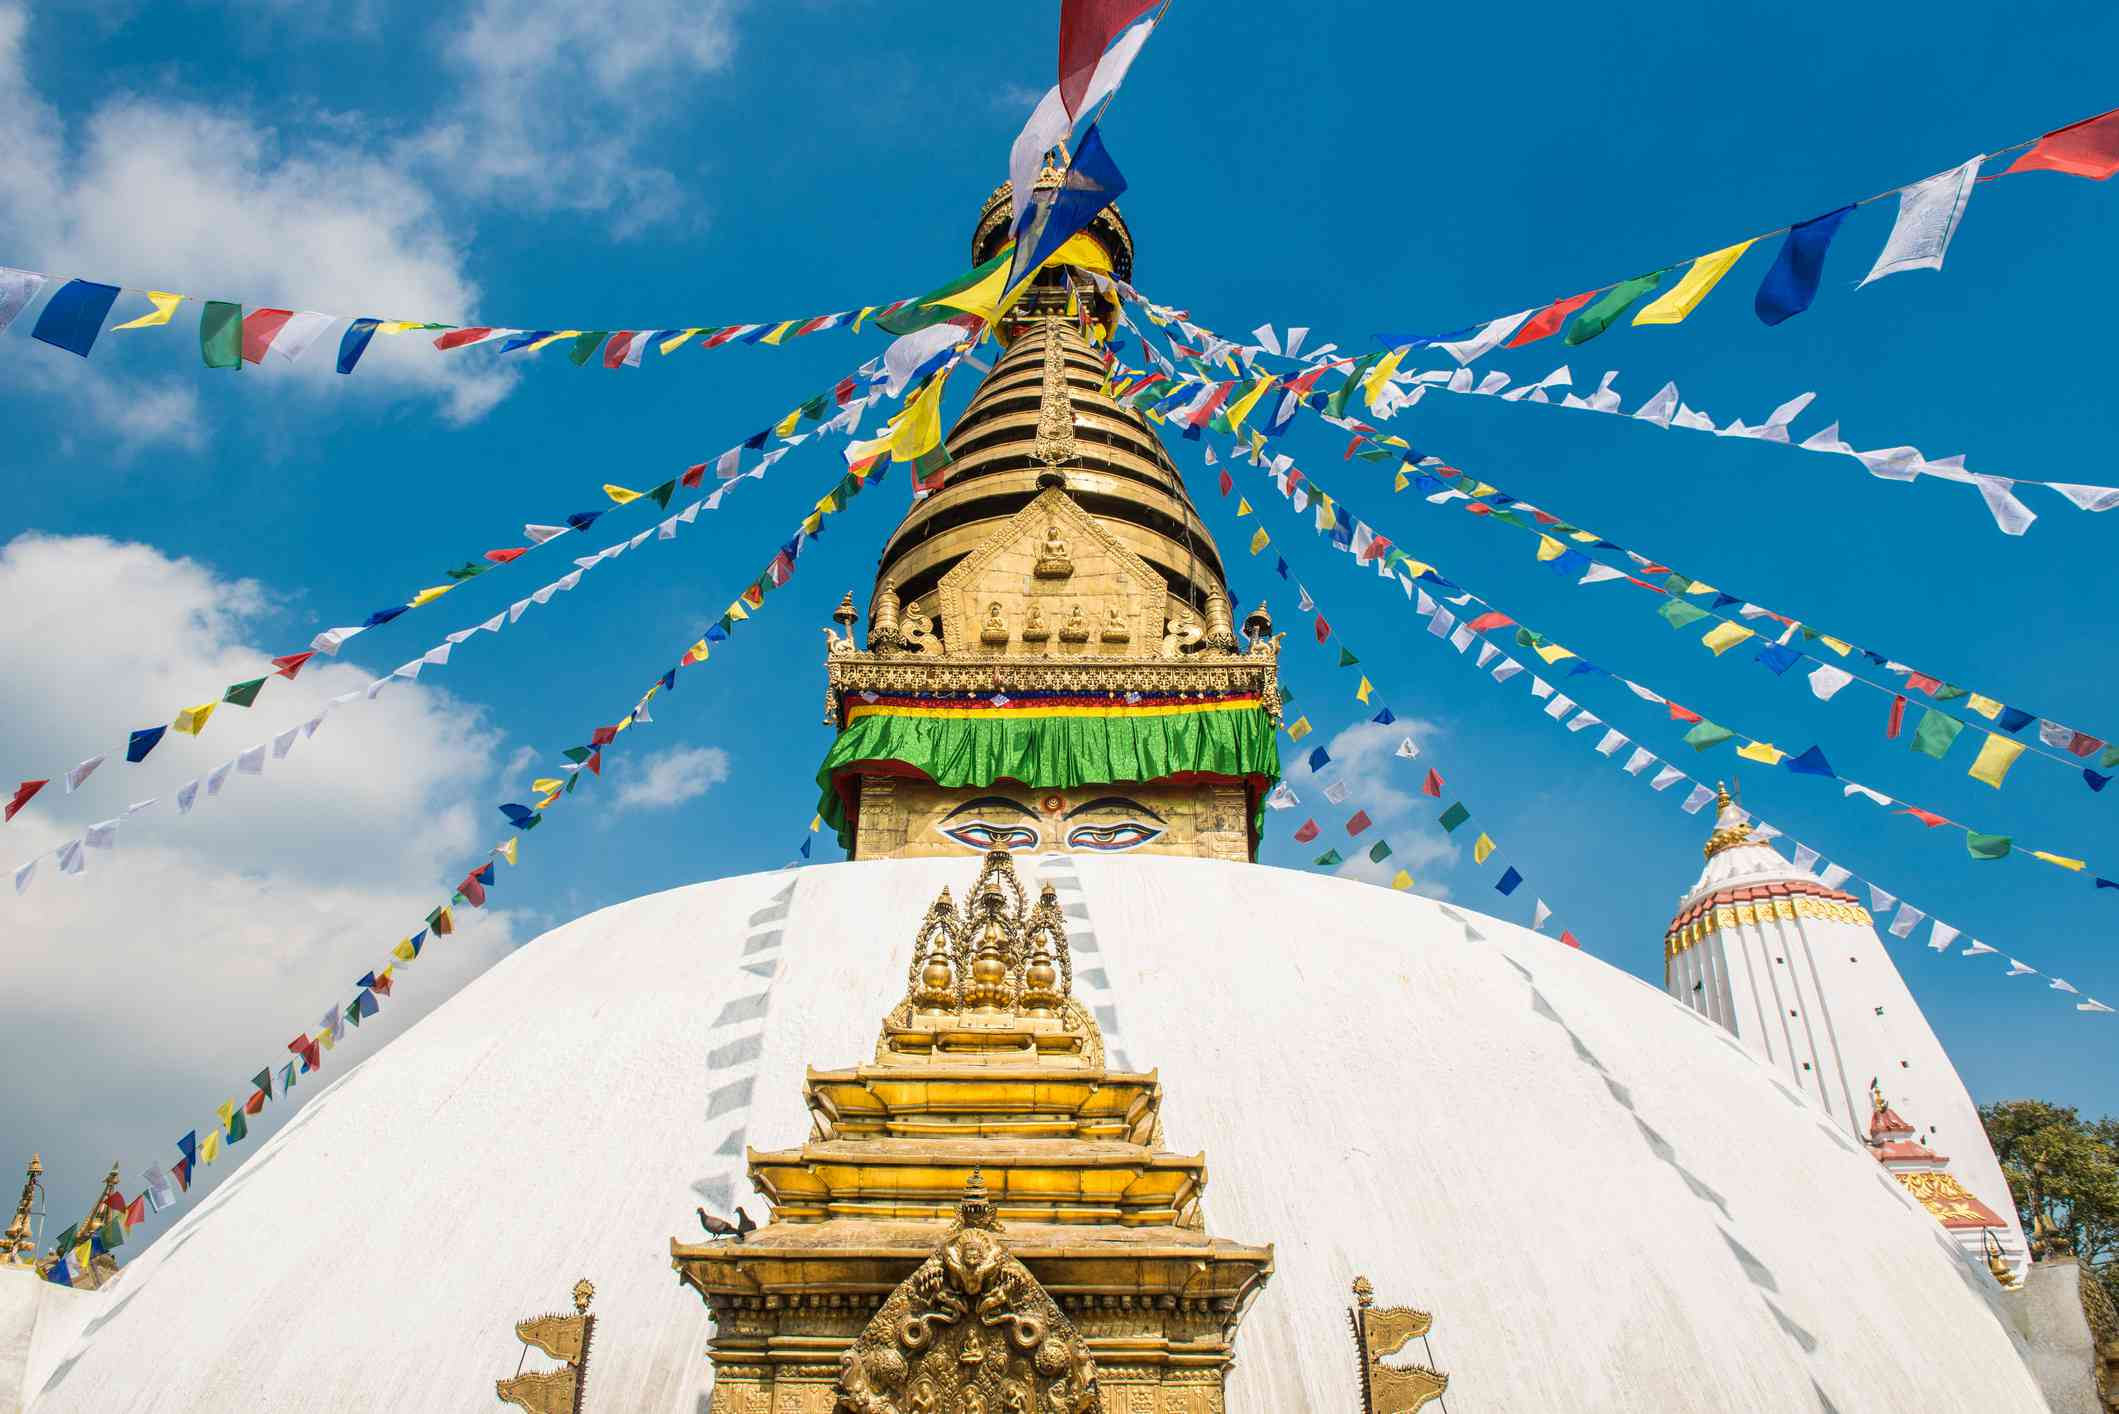 white dome with golden spire and colorful Tibetan prayer flags